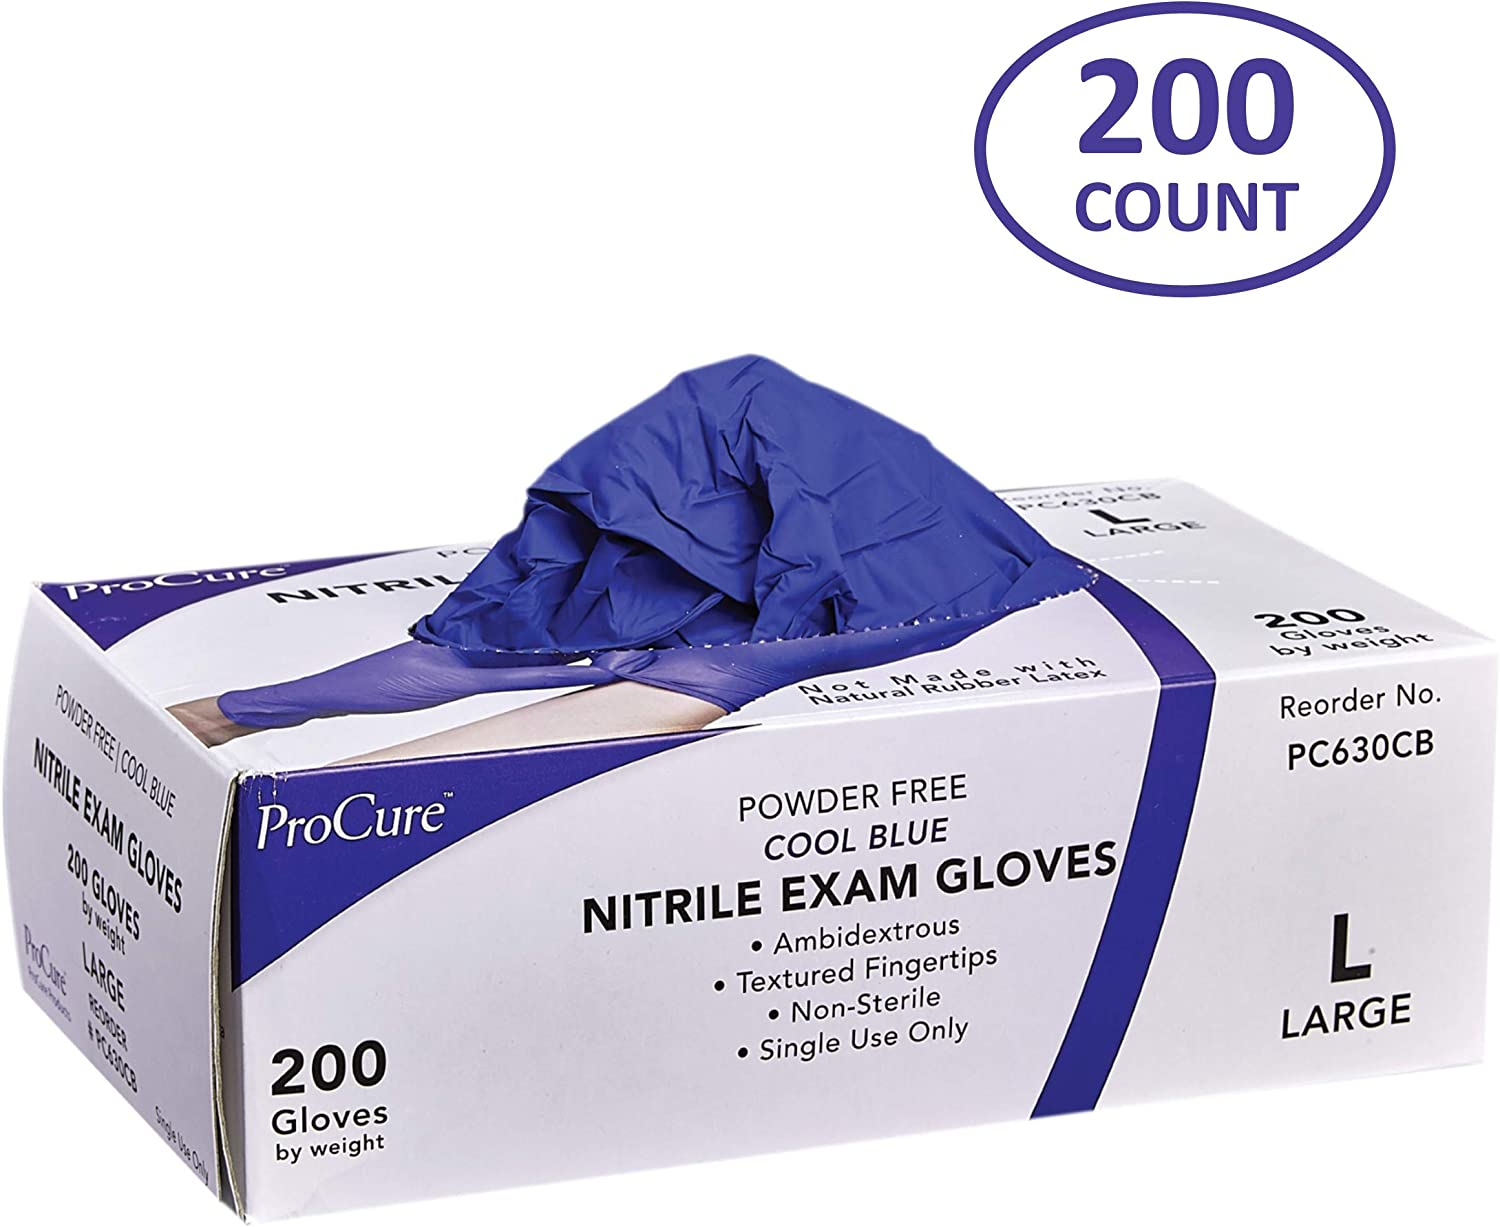 ProCure Disposable Nitrile Gloves – Powder Free, Rubber Latex Free, Medical Exam Grade, Non Sterile, Ambidextrous - Soft with Textured Tips – Cool Blue (Large, 1 Pack, 200 Count)